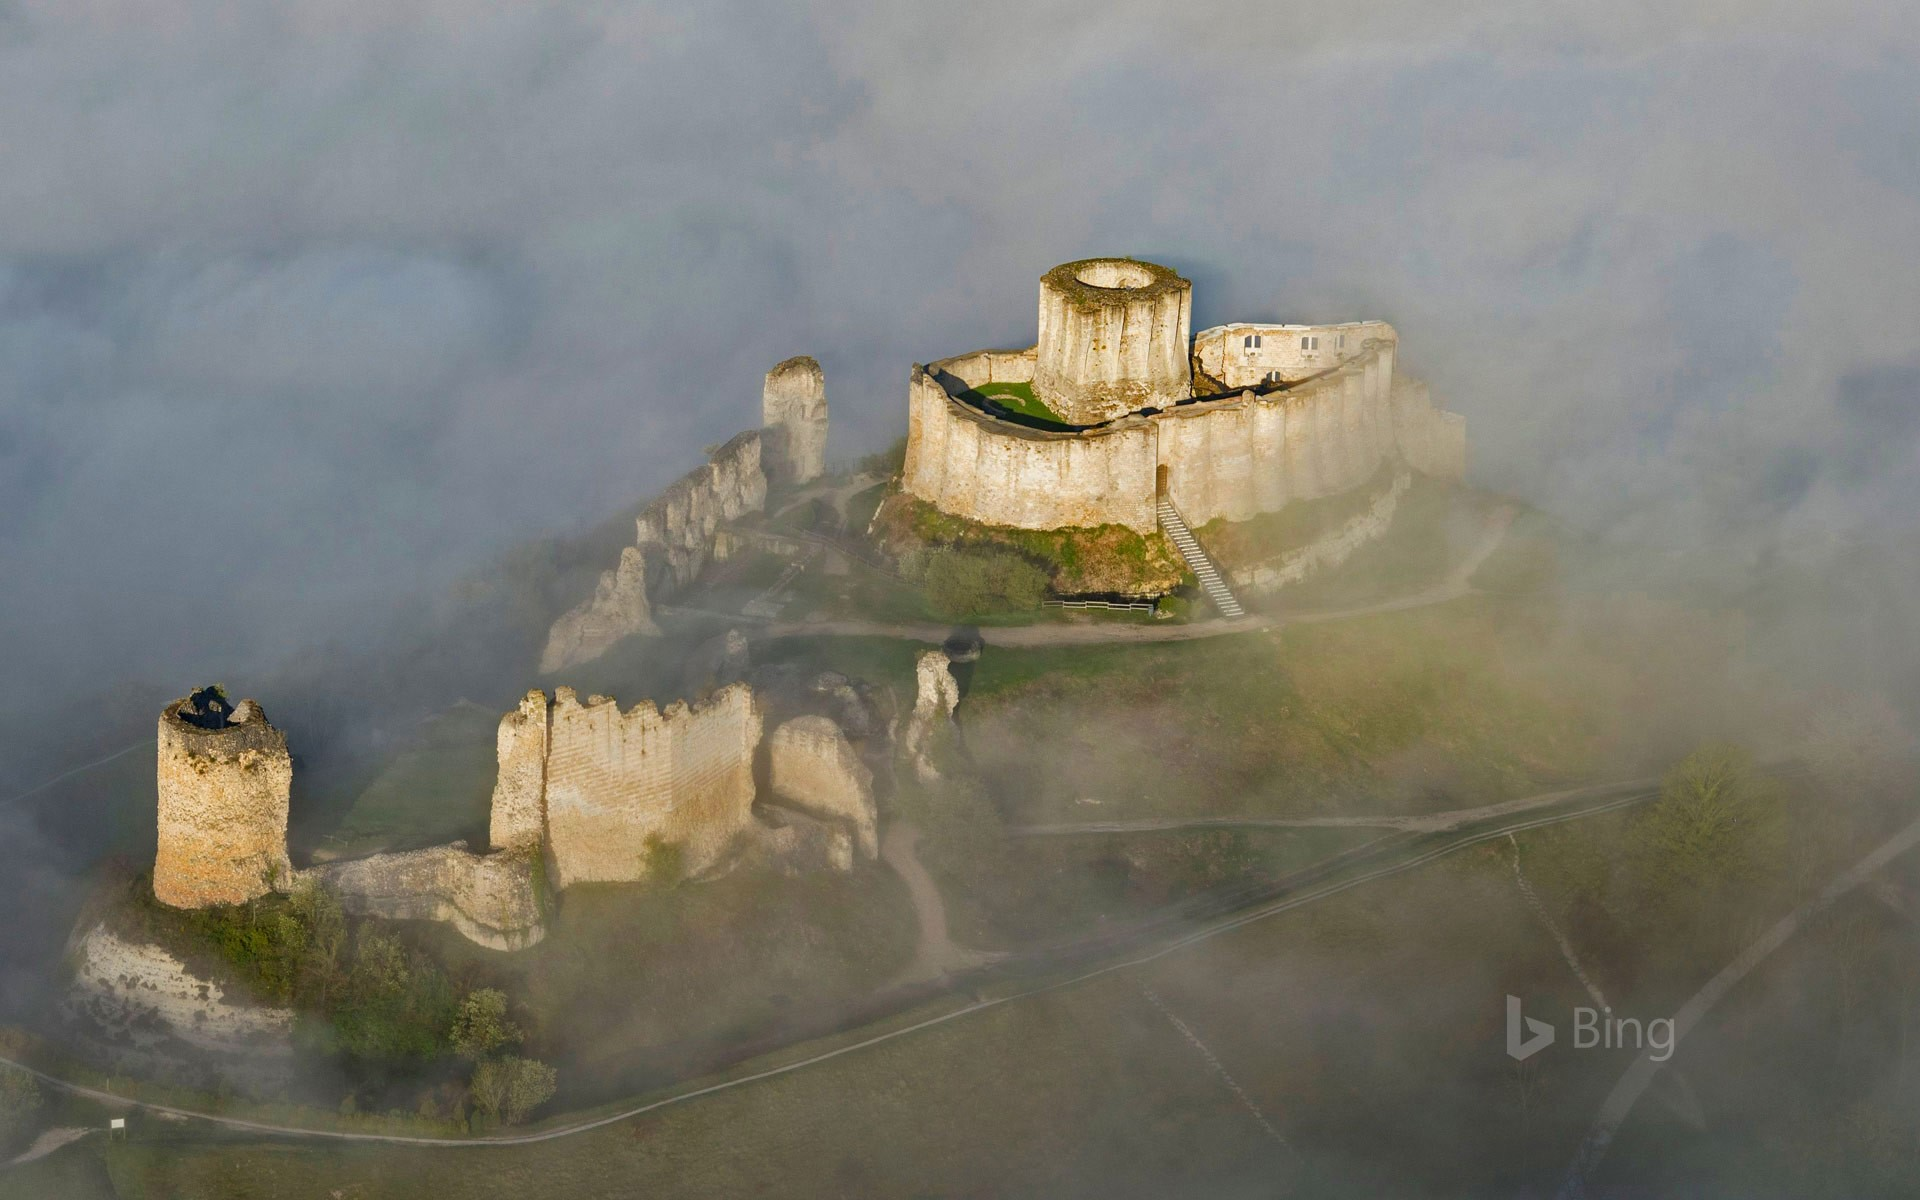 Château Gaillard, a 12th-century fortress in the Seine Valley, France